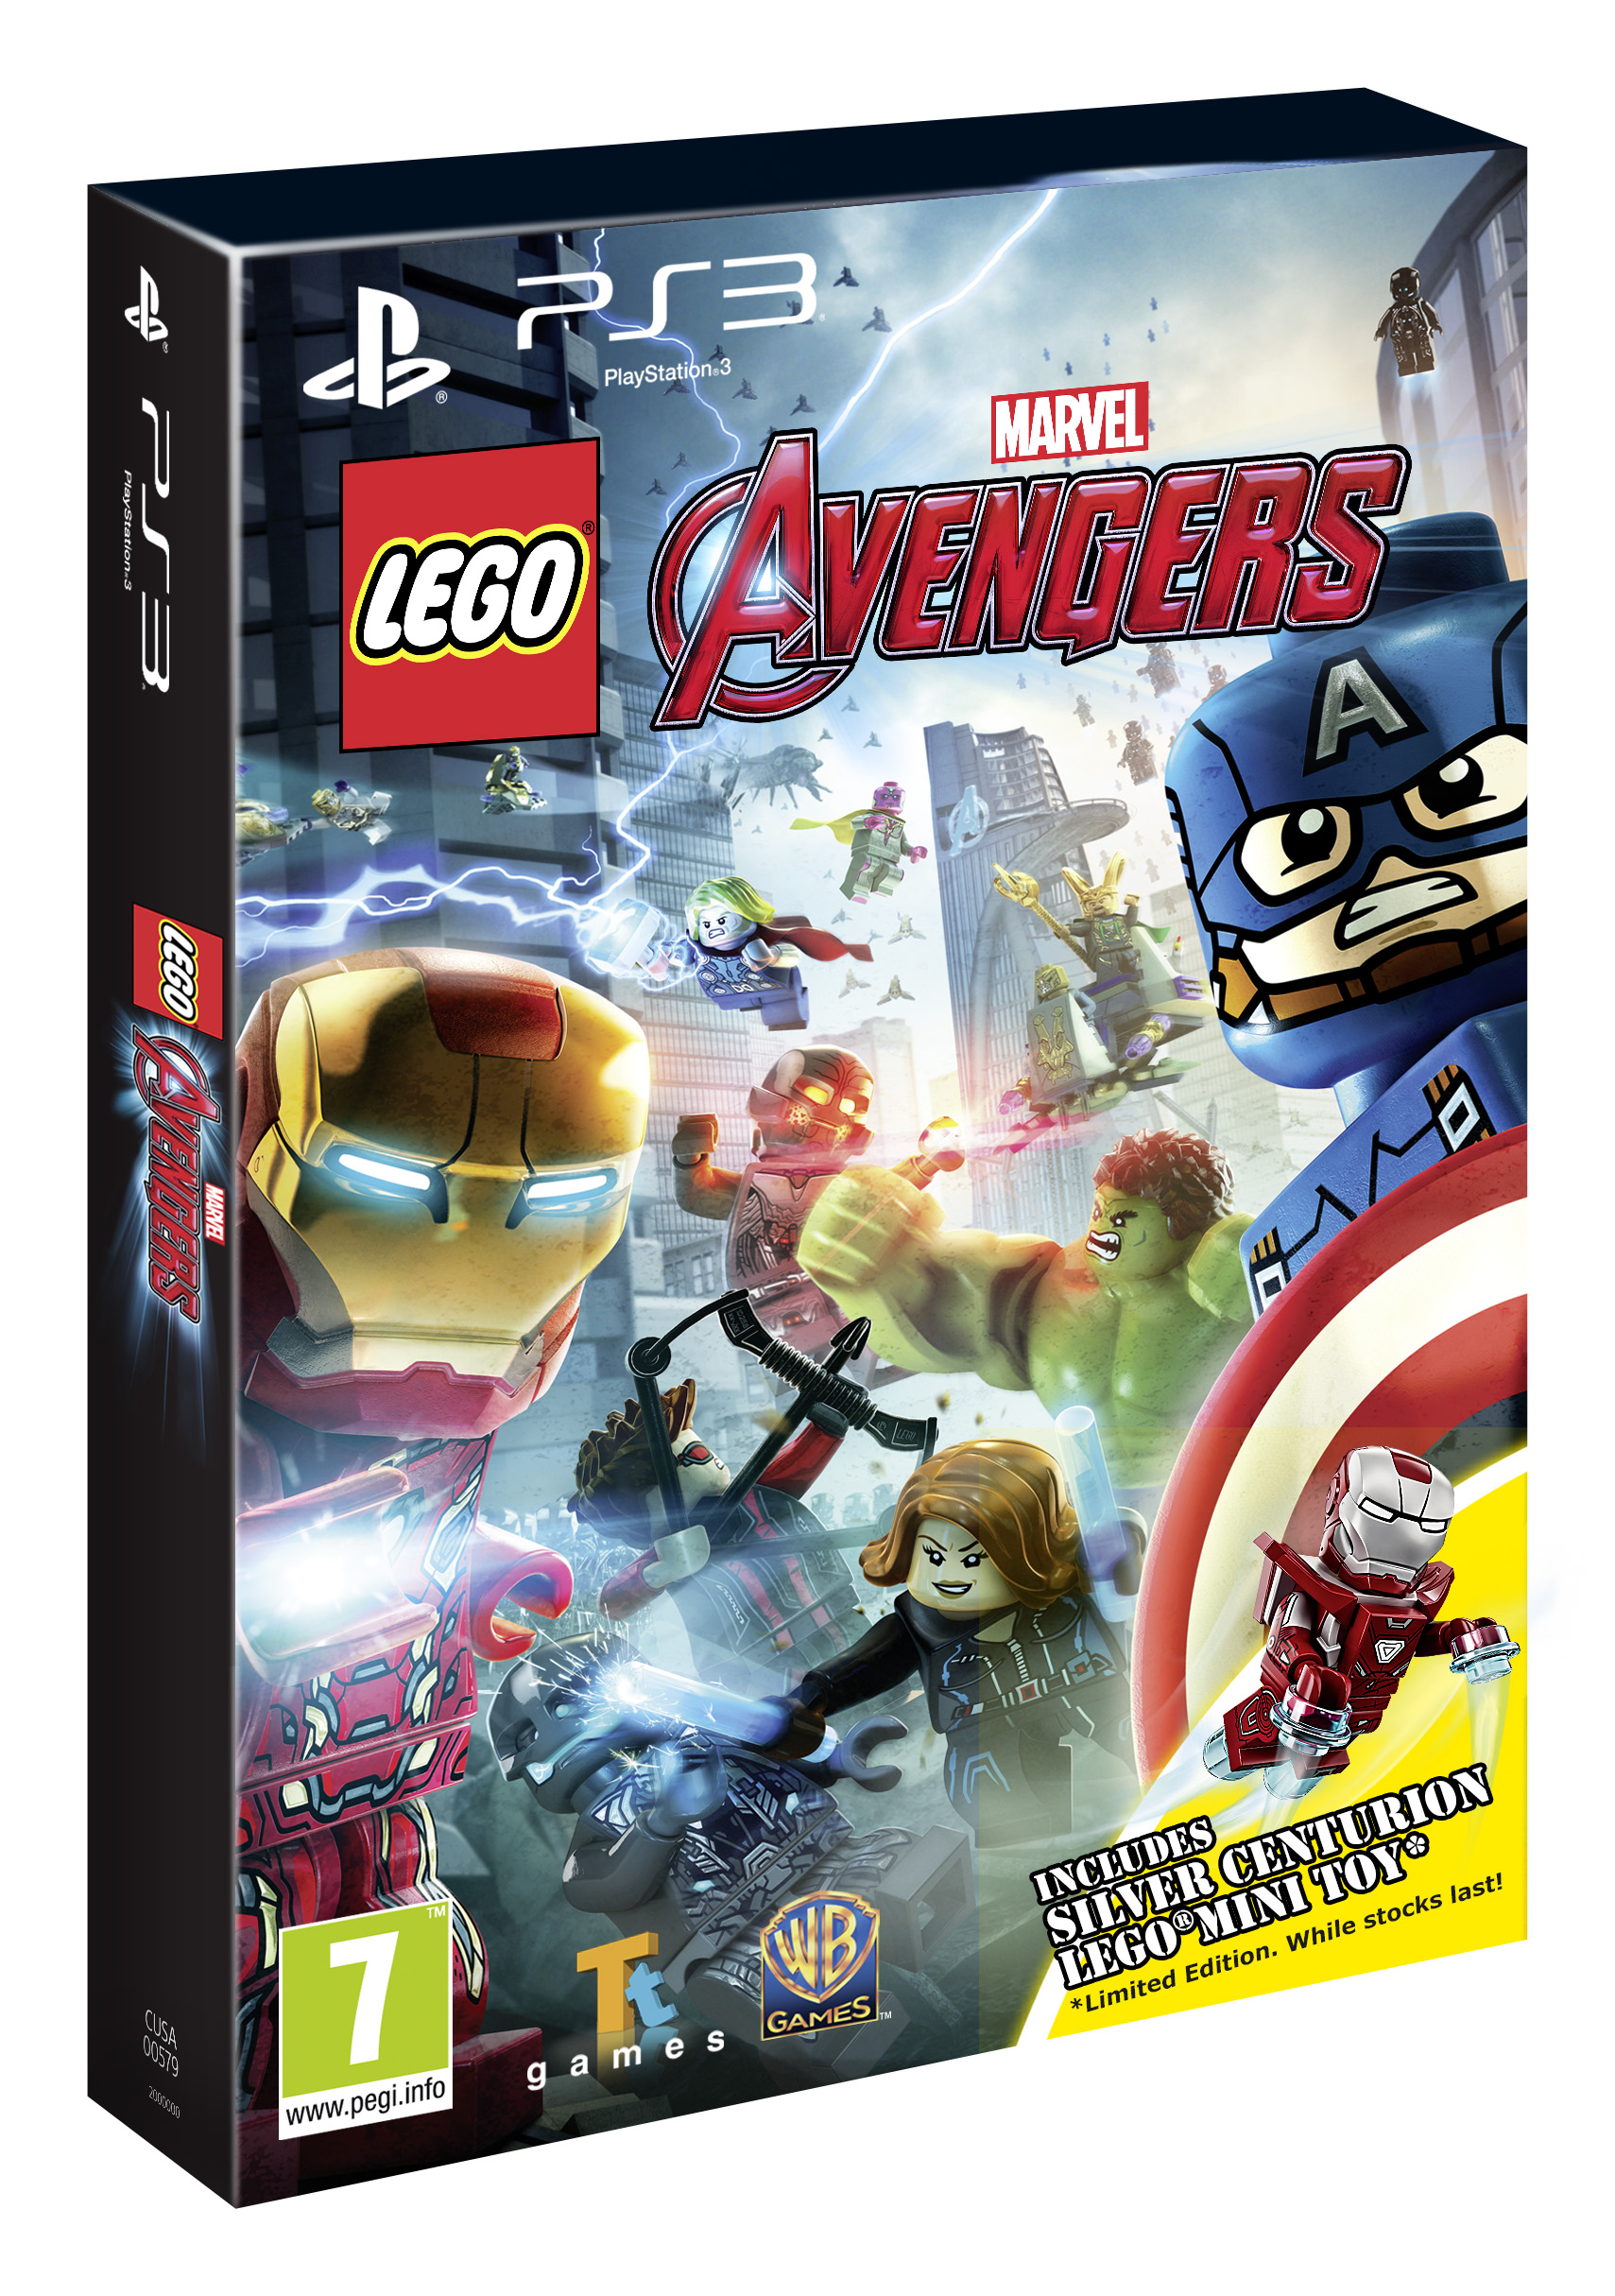 New Lego Games For Ps3 : Lego marvel avengers box art screenshots cosmic book news